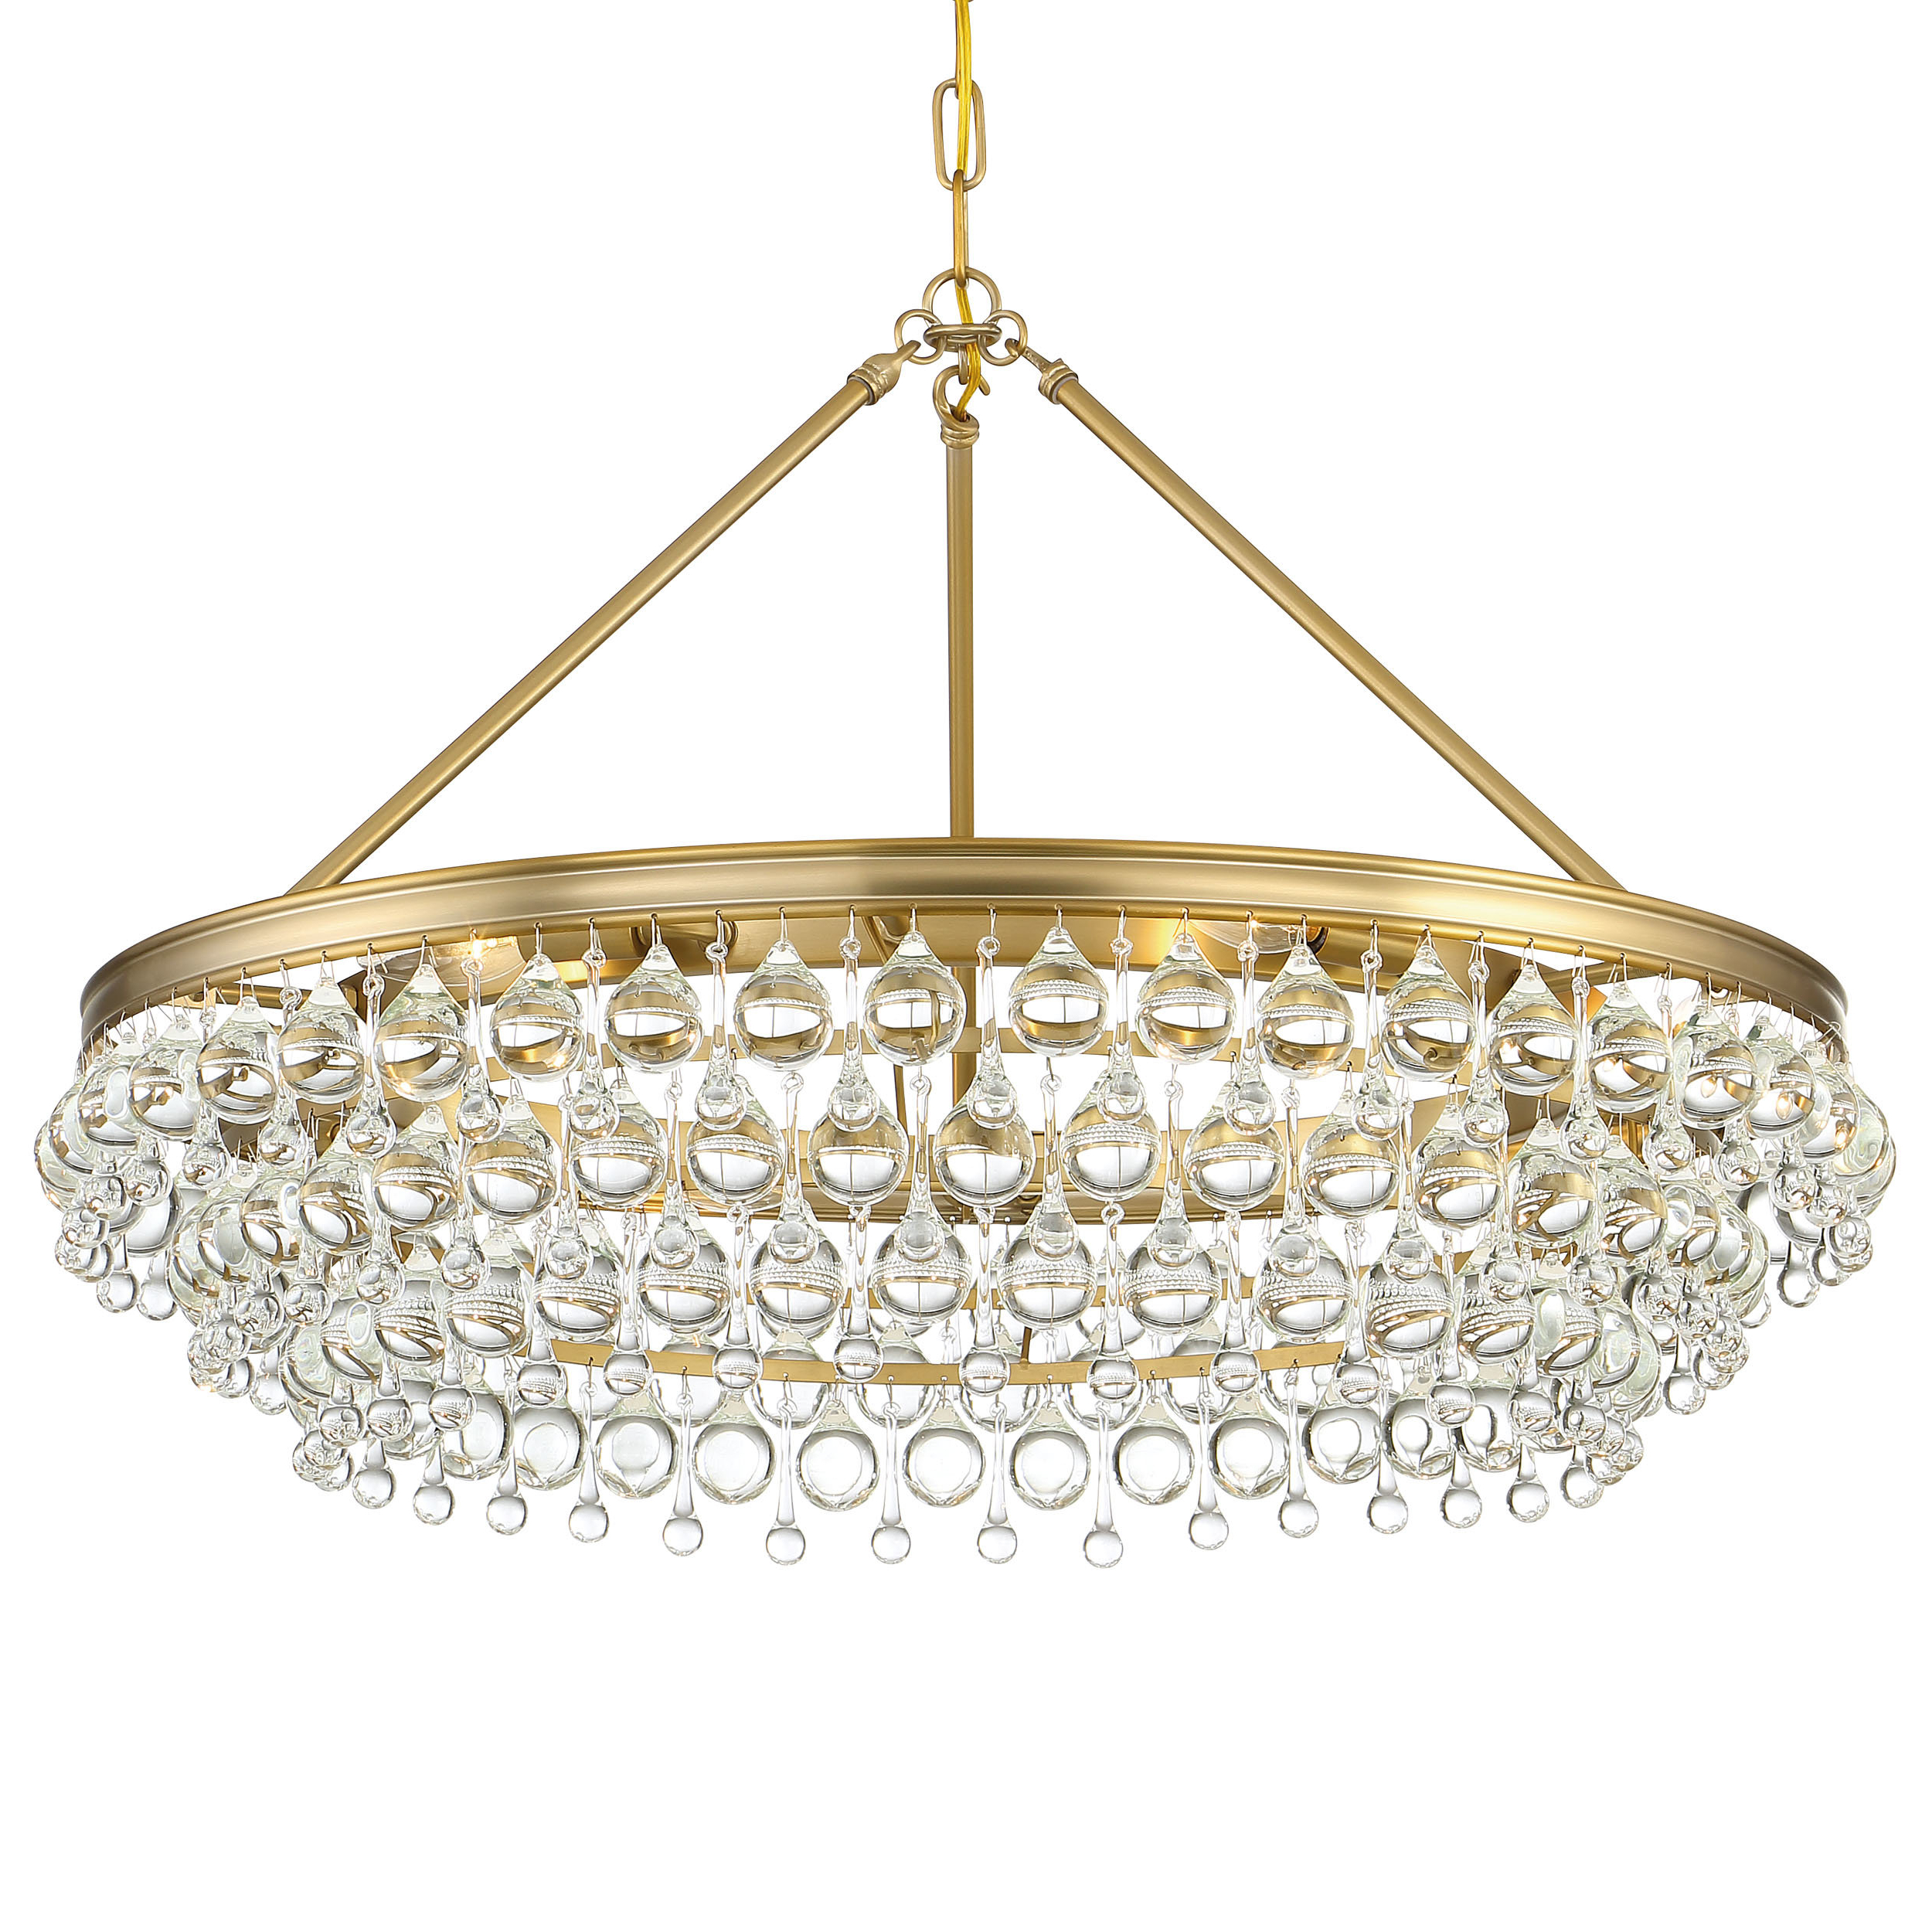 Whyalla 6 Light Crystal Chandelier Pertaining To Best And Newest Bramers 6 Light Novelty Chandeliers (View 20 of 20)